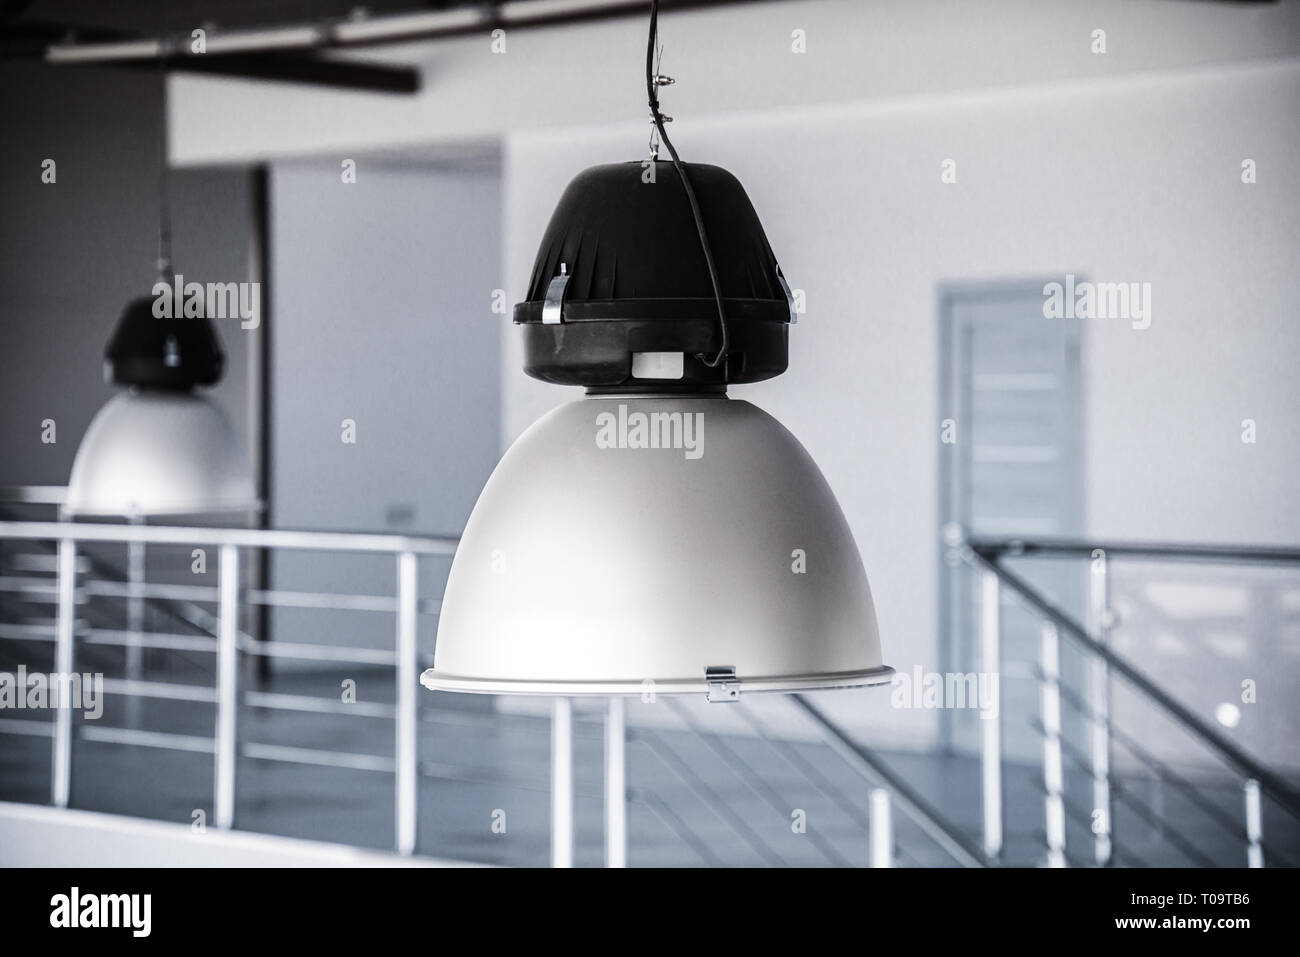 Metal lighting fixtures with a shallow depth of field stock image